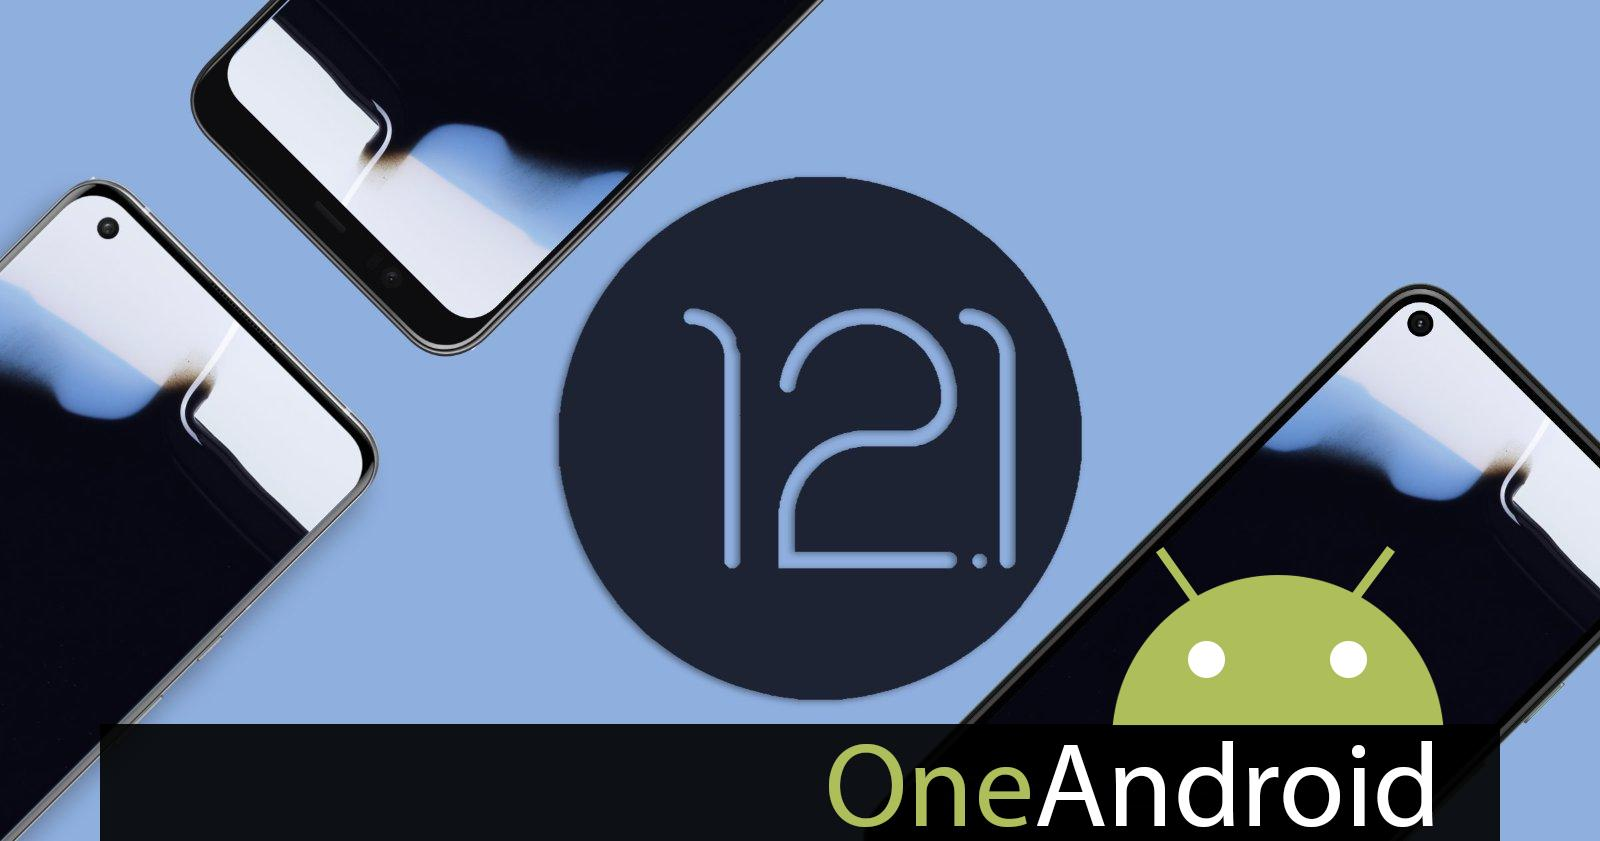 You can now download the new official Android 12.1 wallpaper